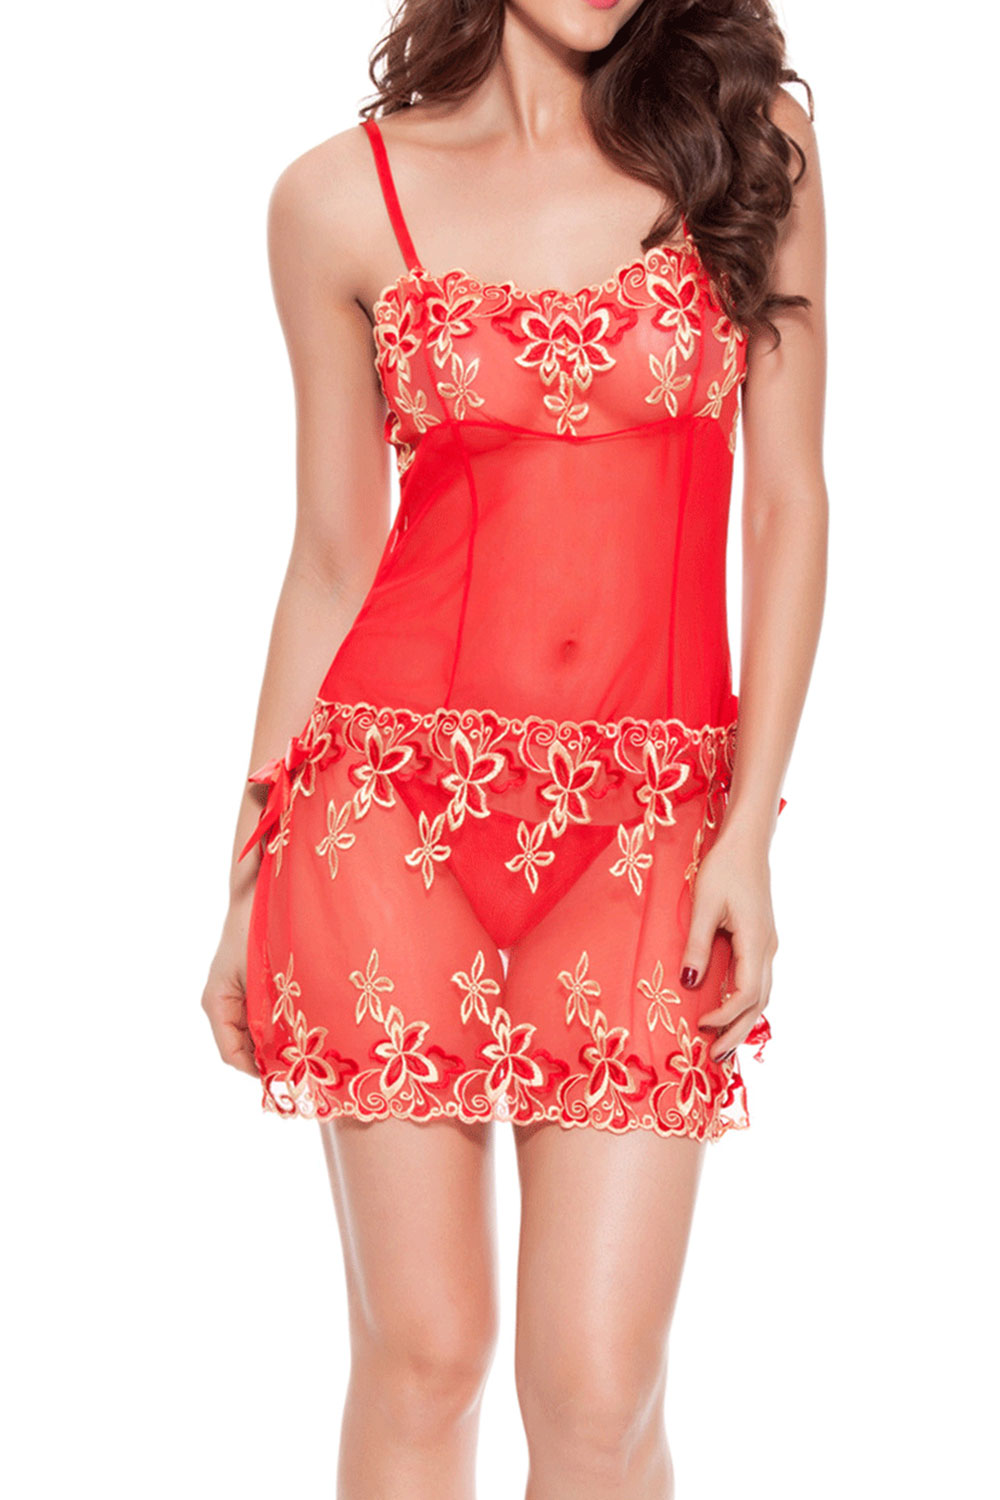 21d960fa6ed UNOMATCH WOMEN SILVER DECORATED SHEER LACE LINGERIE RED – Unomatch Shop